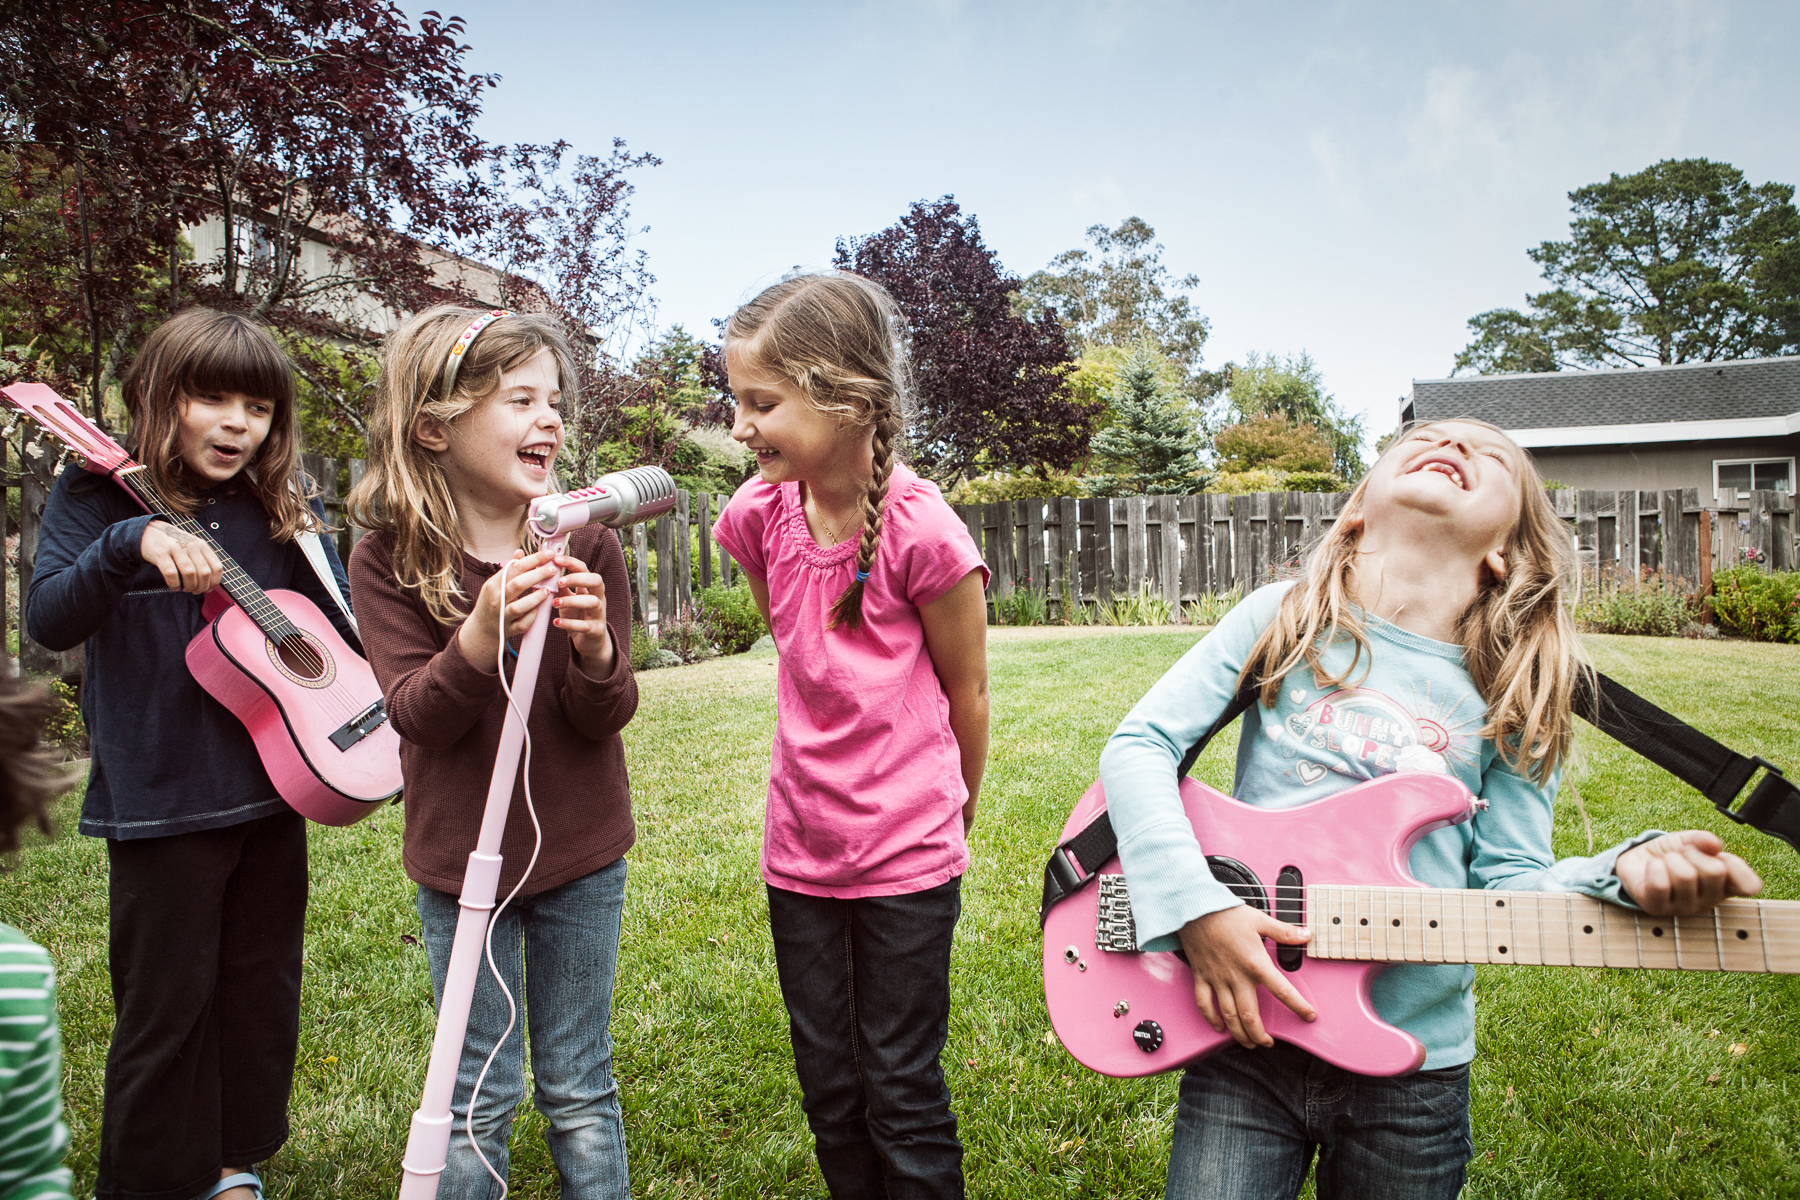 Girls Playing Instruments in a Backyard